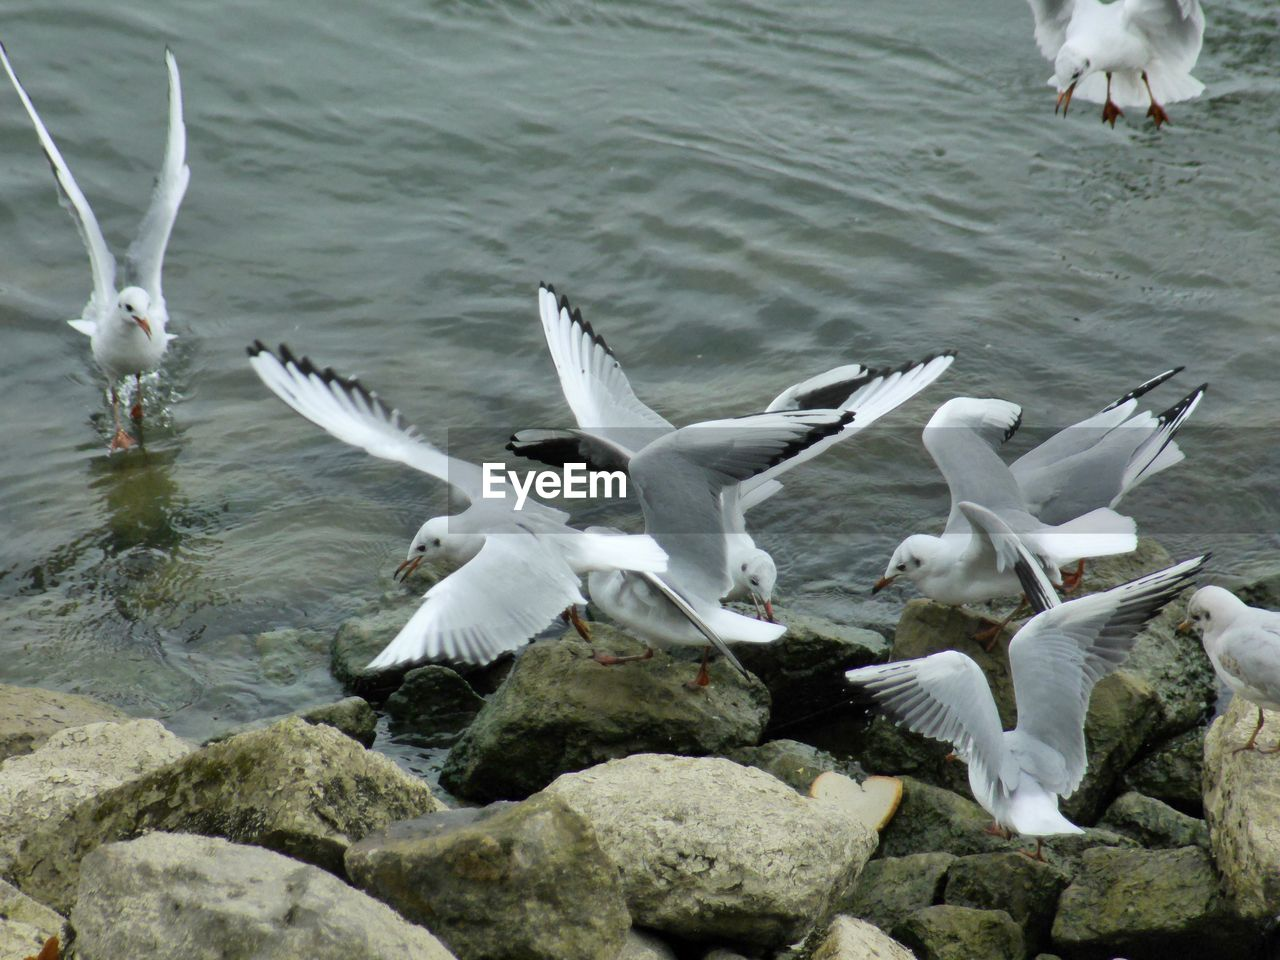 animal themes, bird, animals in the wild, animal wildlife, spread wings, nature, flying, white color, lake, large group of animals, water, high angle view, day, no people, outdoors, seagull, motion, water bird, swan, flapping, togetherness, beauty in nature